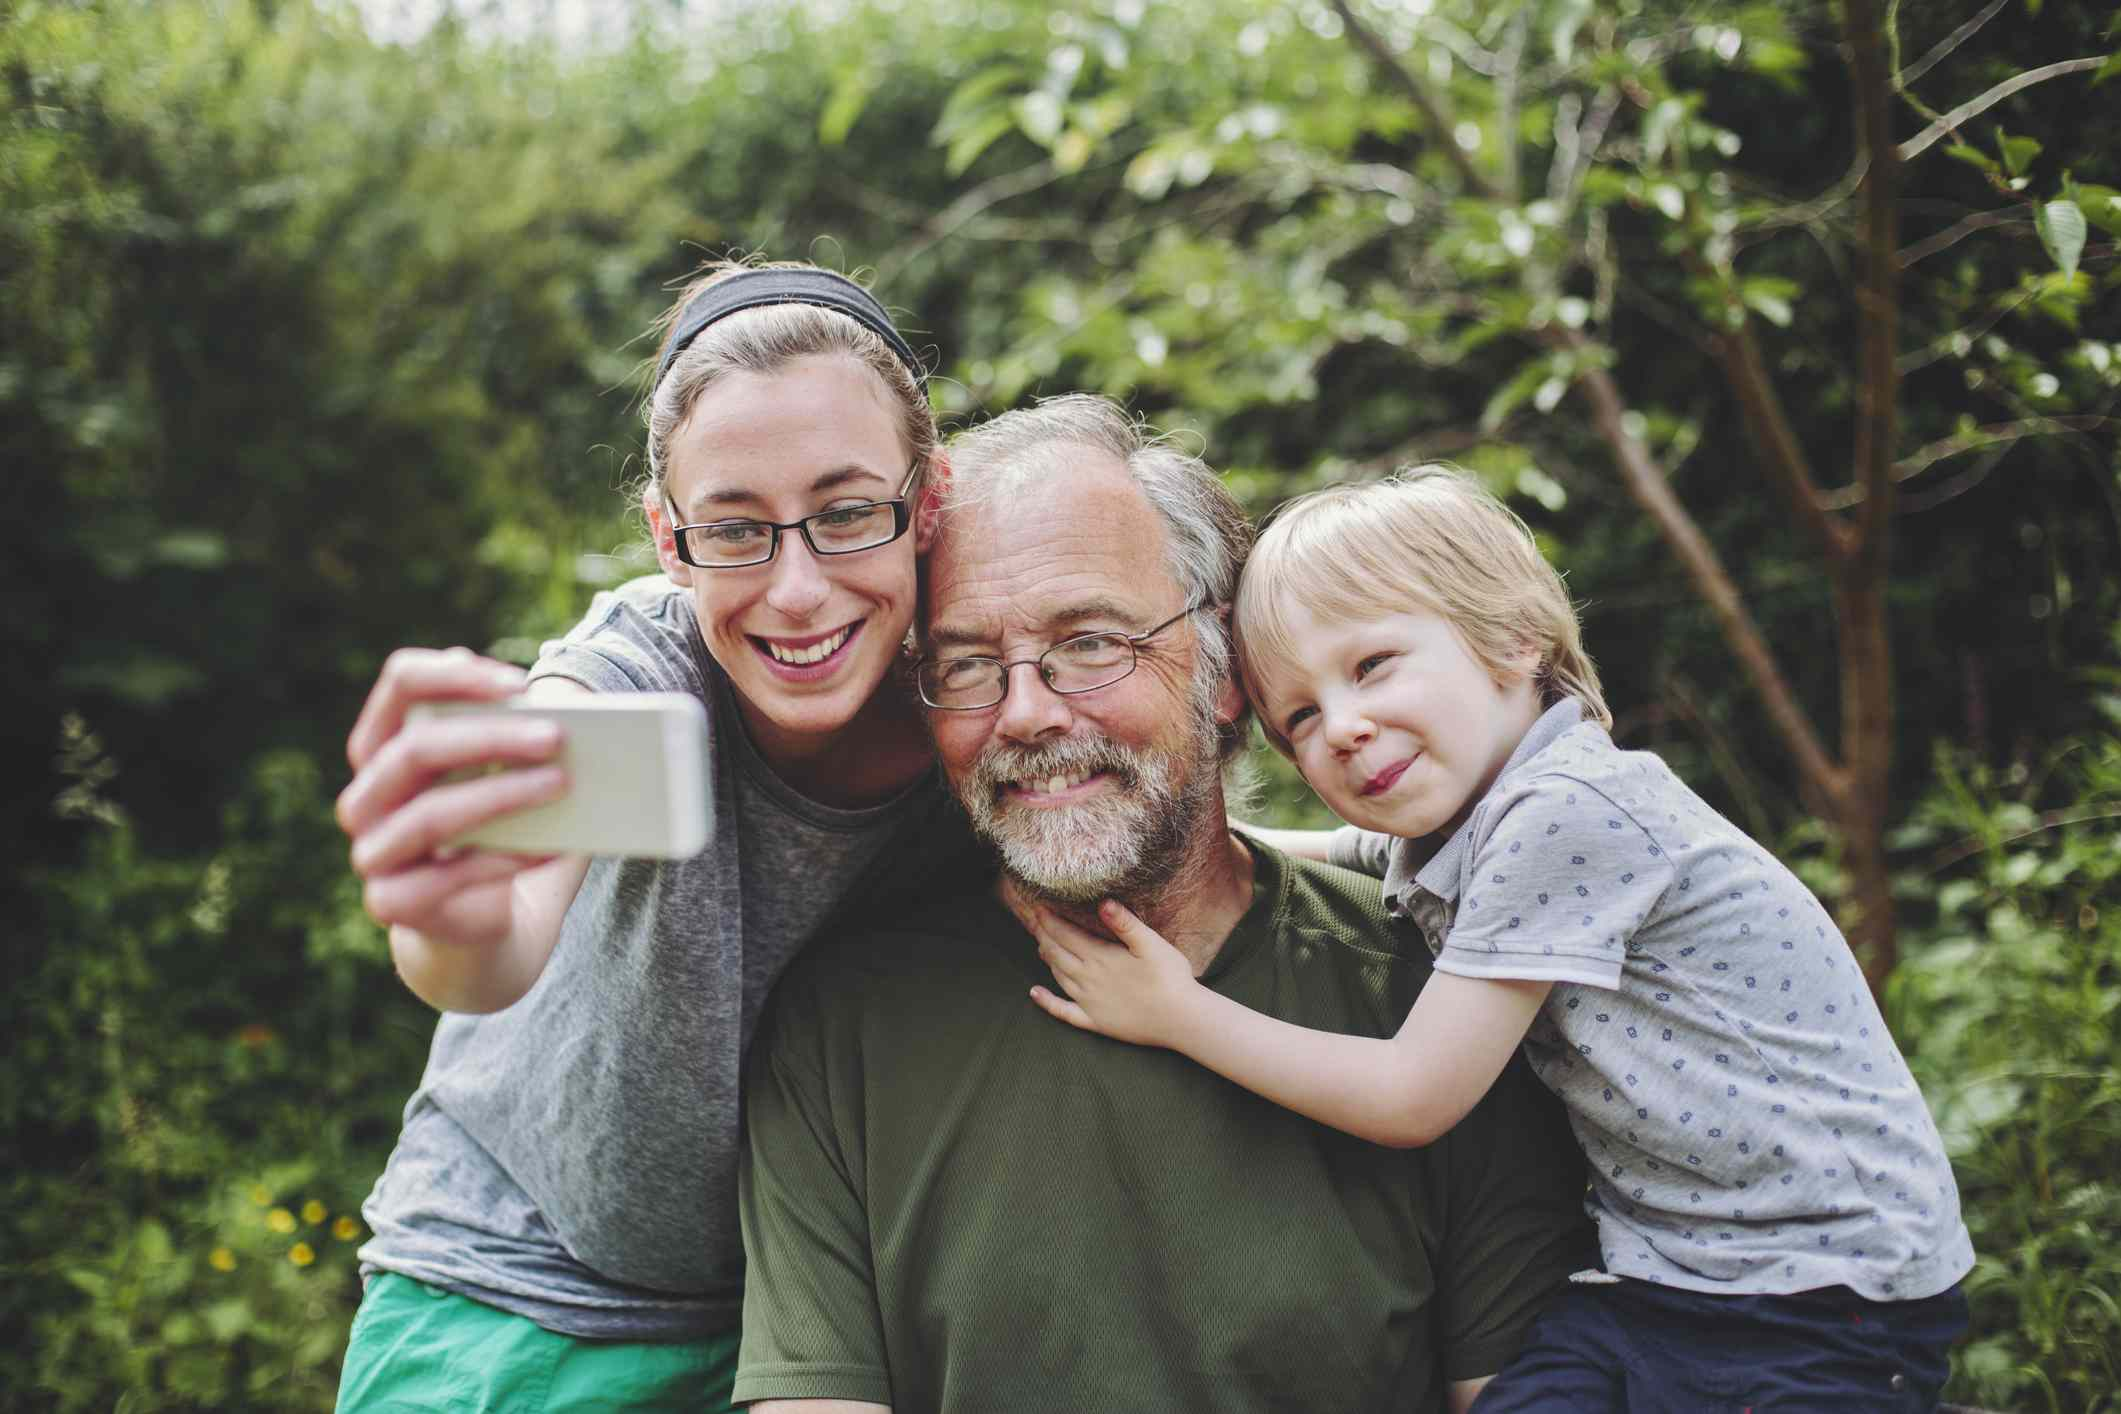 Man, woman, and child taking a selfie together in nature.